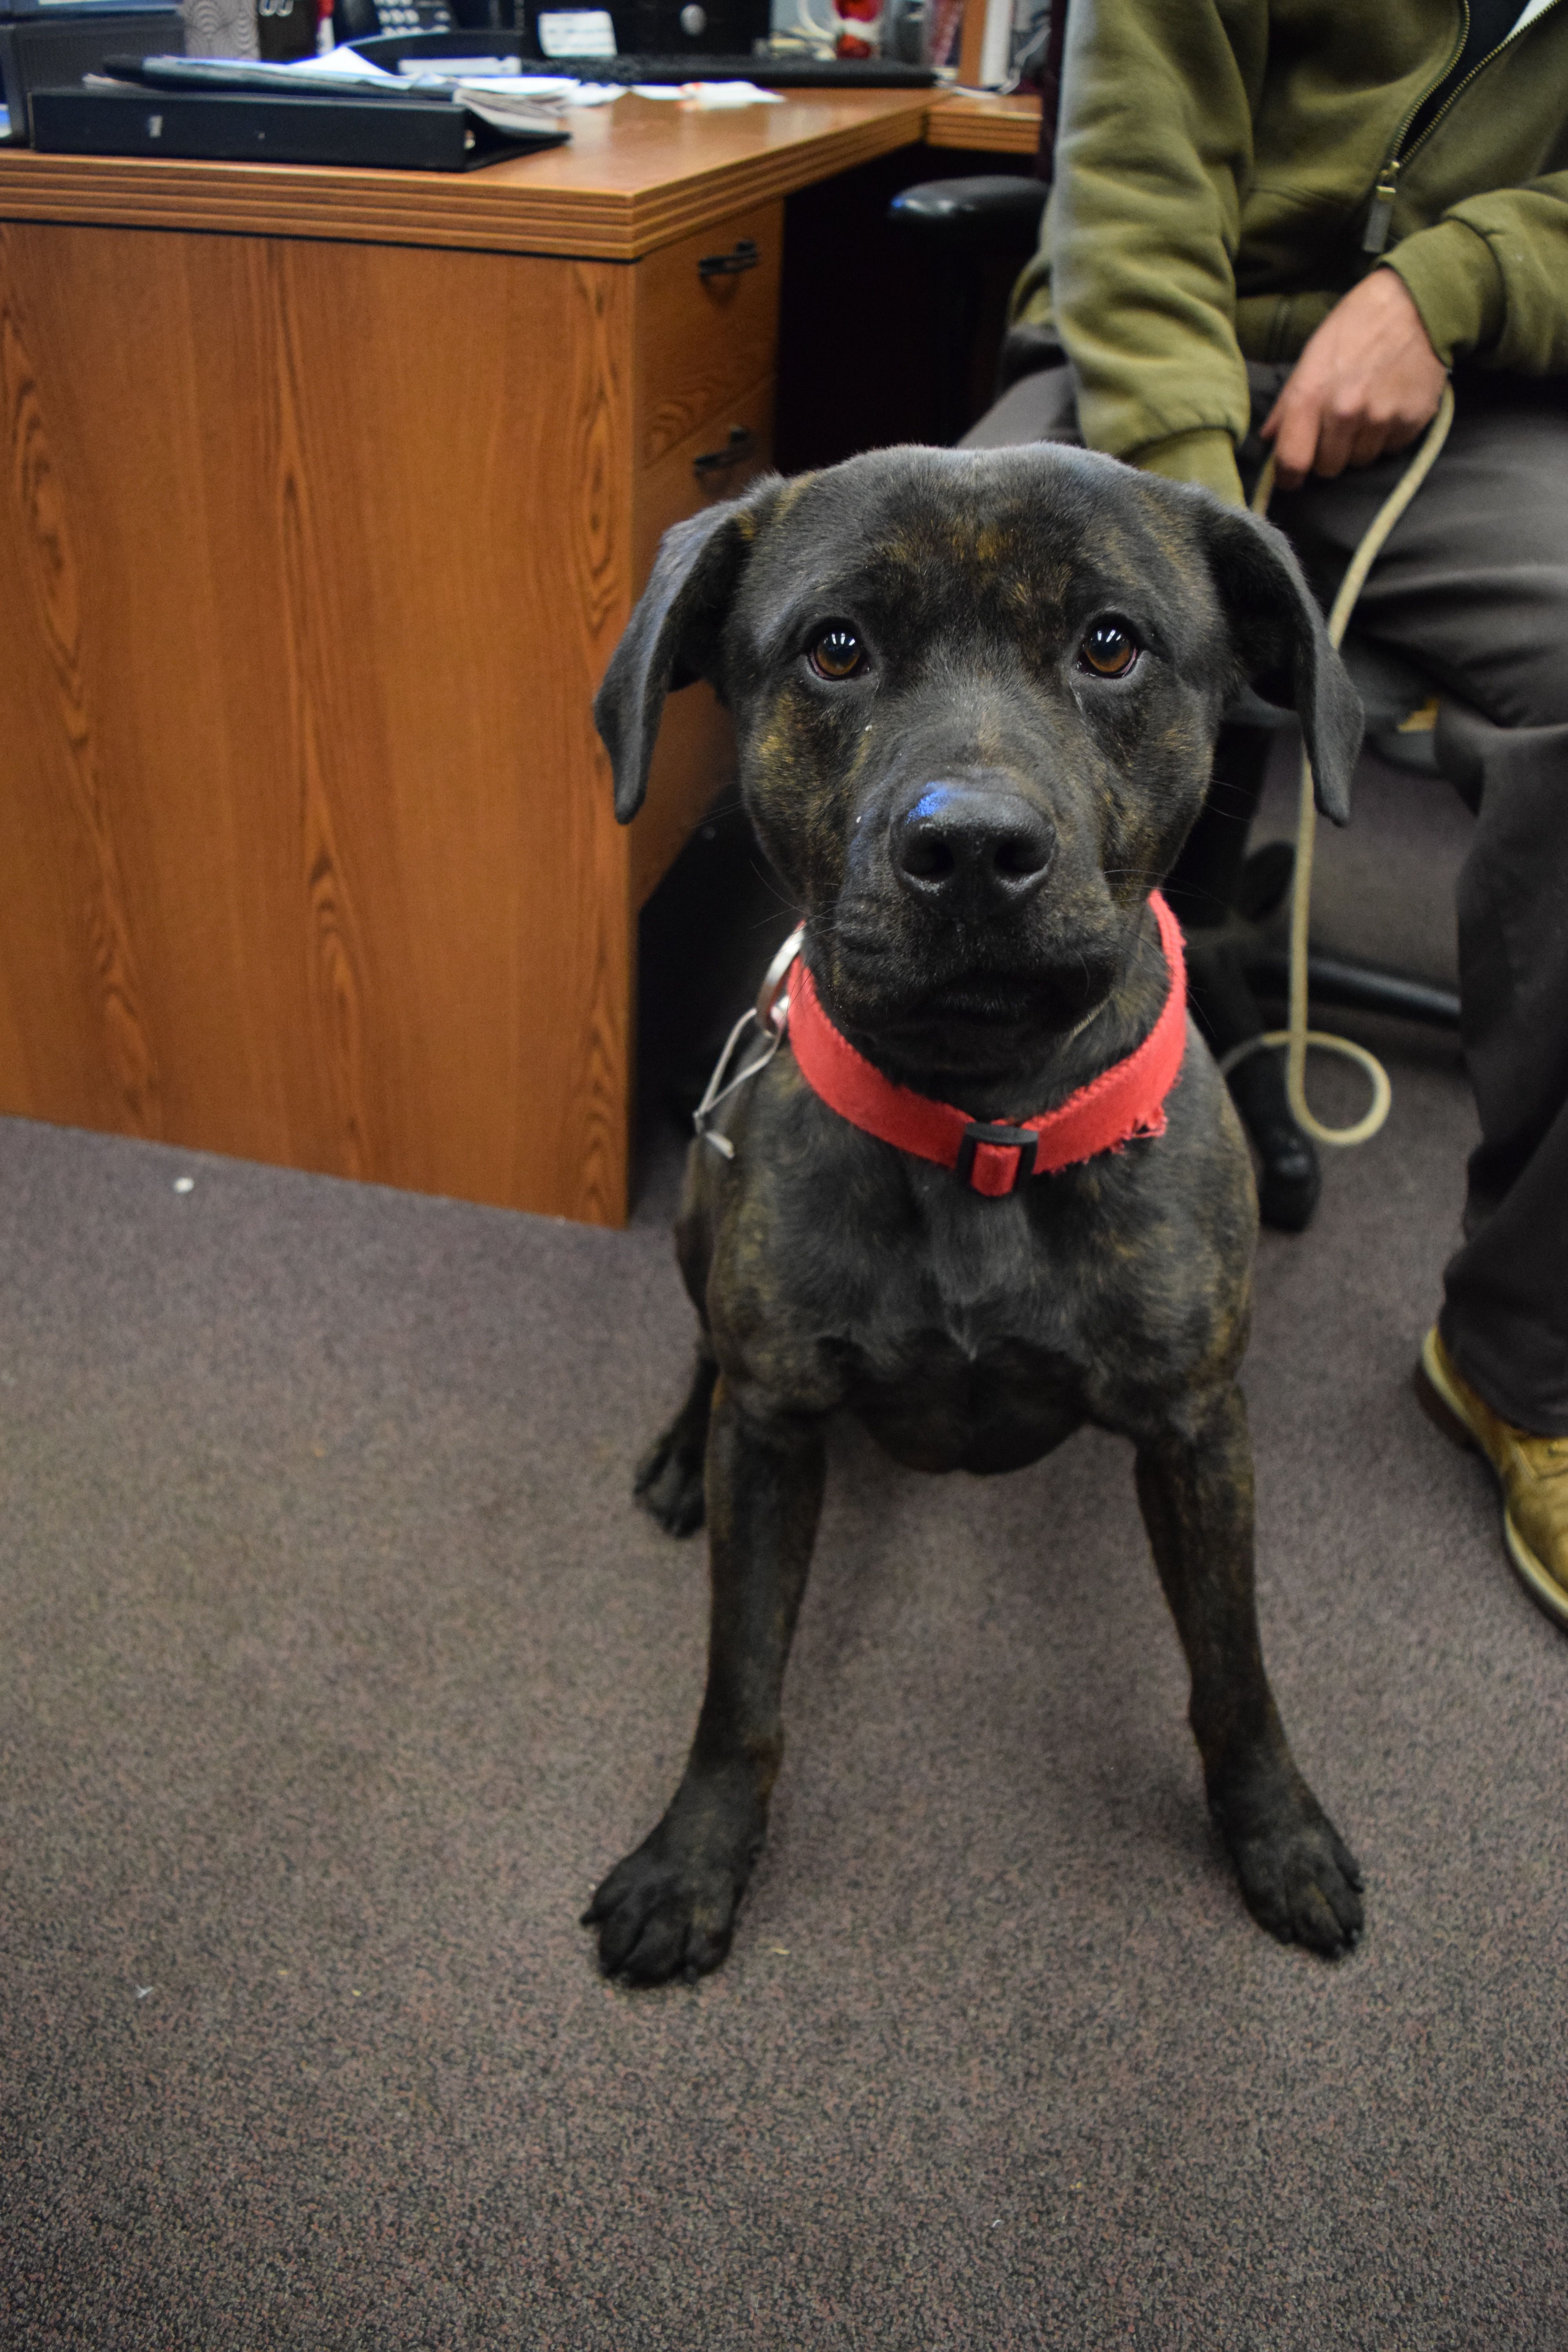 Baby Is An Adoptable Dog Cane Corso Mastiff Mix Searching For A Forever Family Near Bay Shore Ny Use Petfinder To Find Adopta Mastiff Mix Dogs Dog Adoption